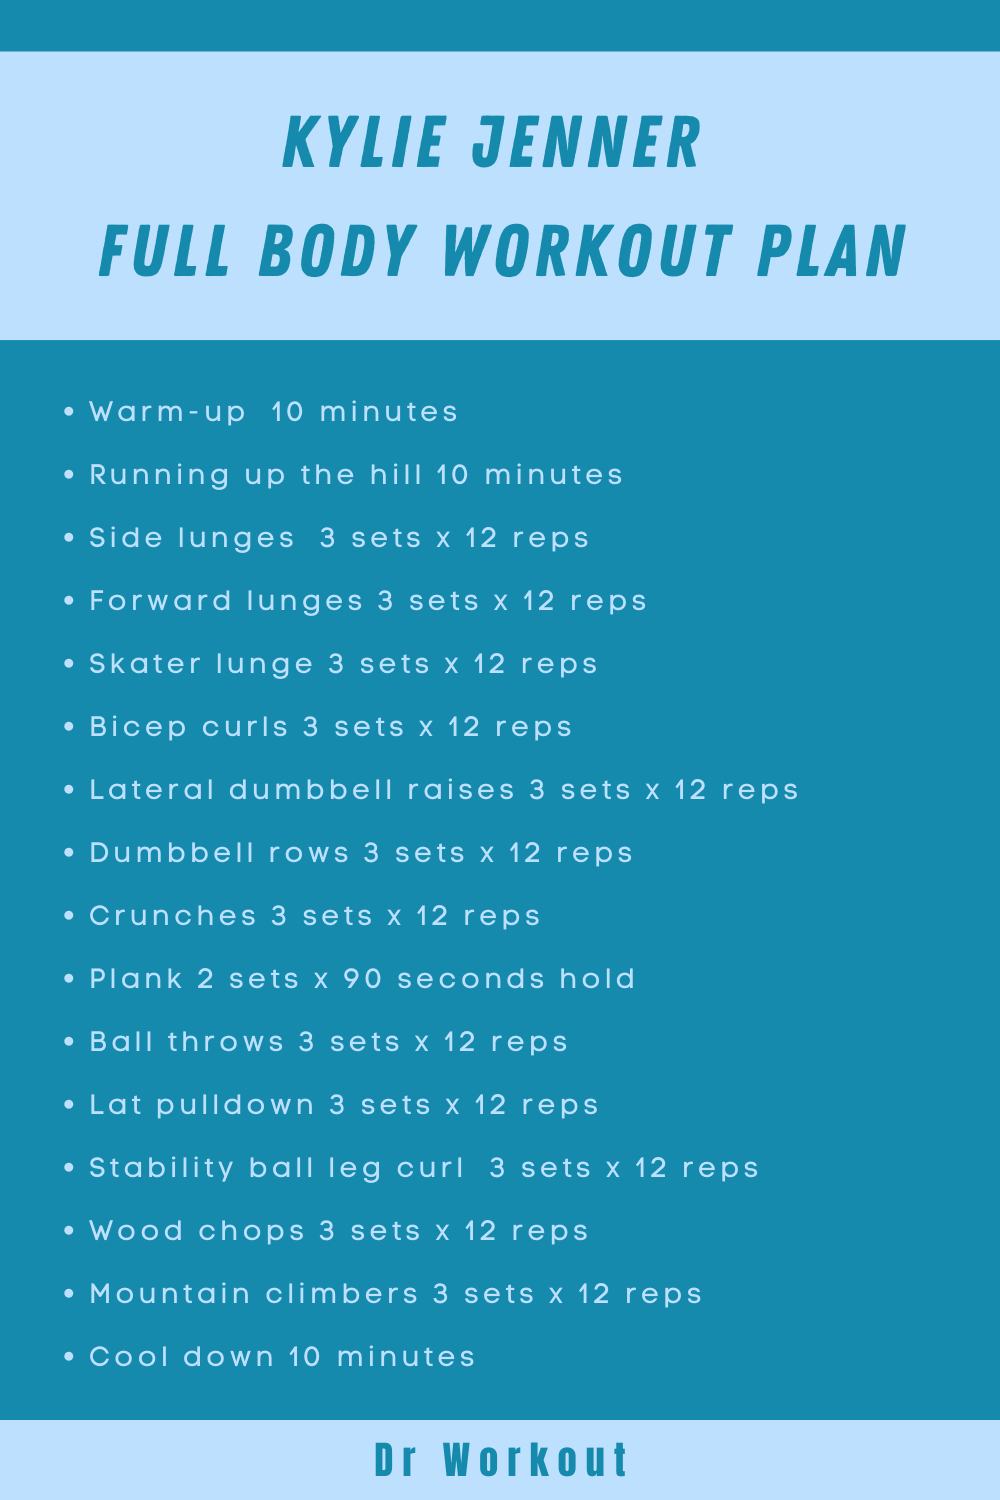 Kylie Jenner Full Body Workout Routine